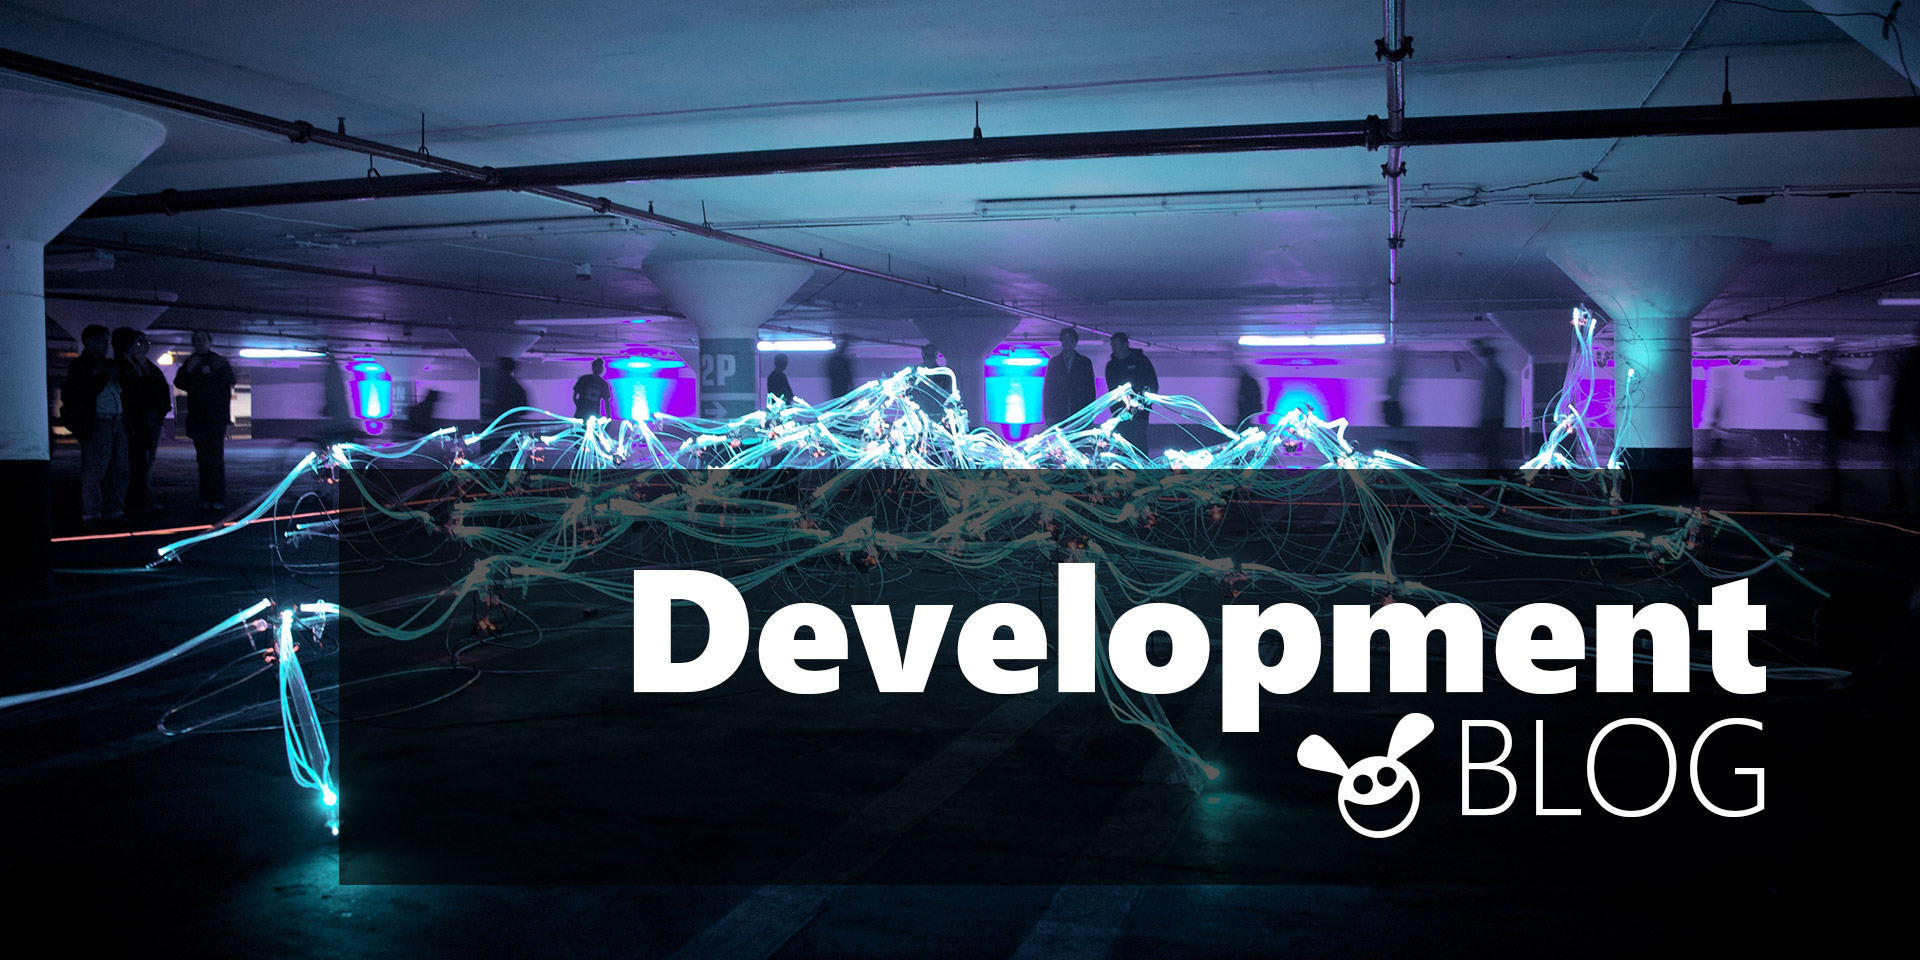 Development Blog